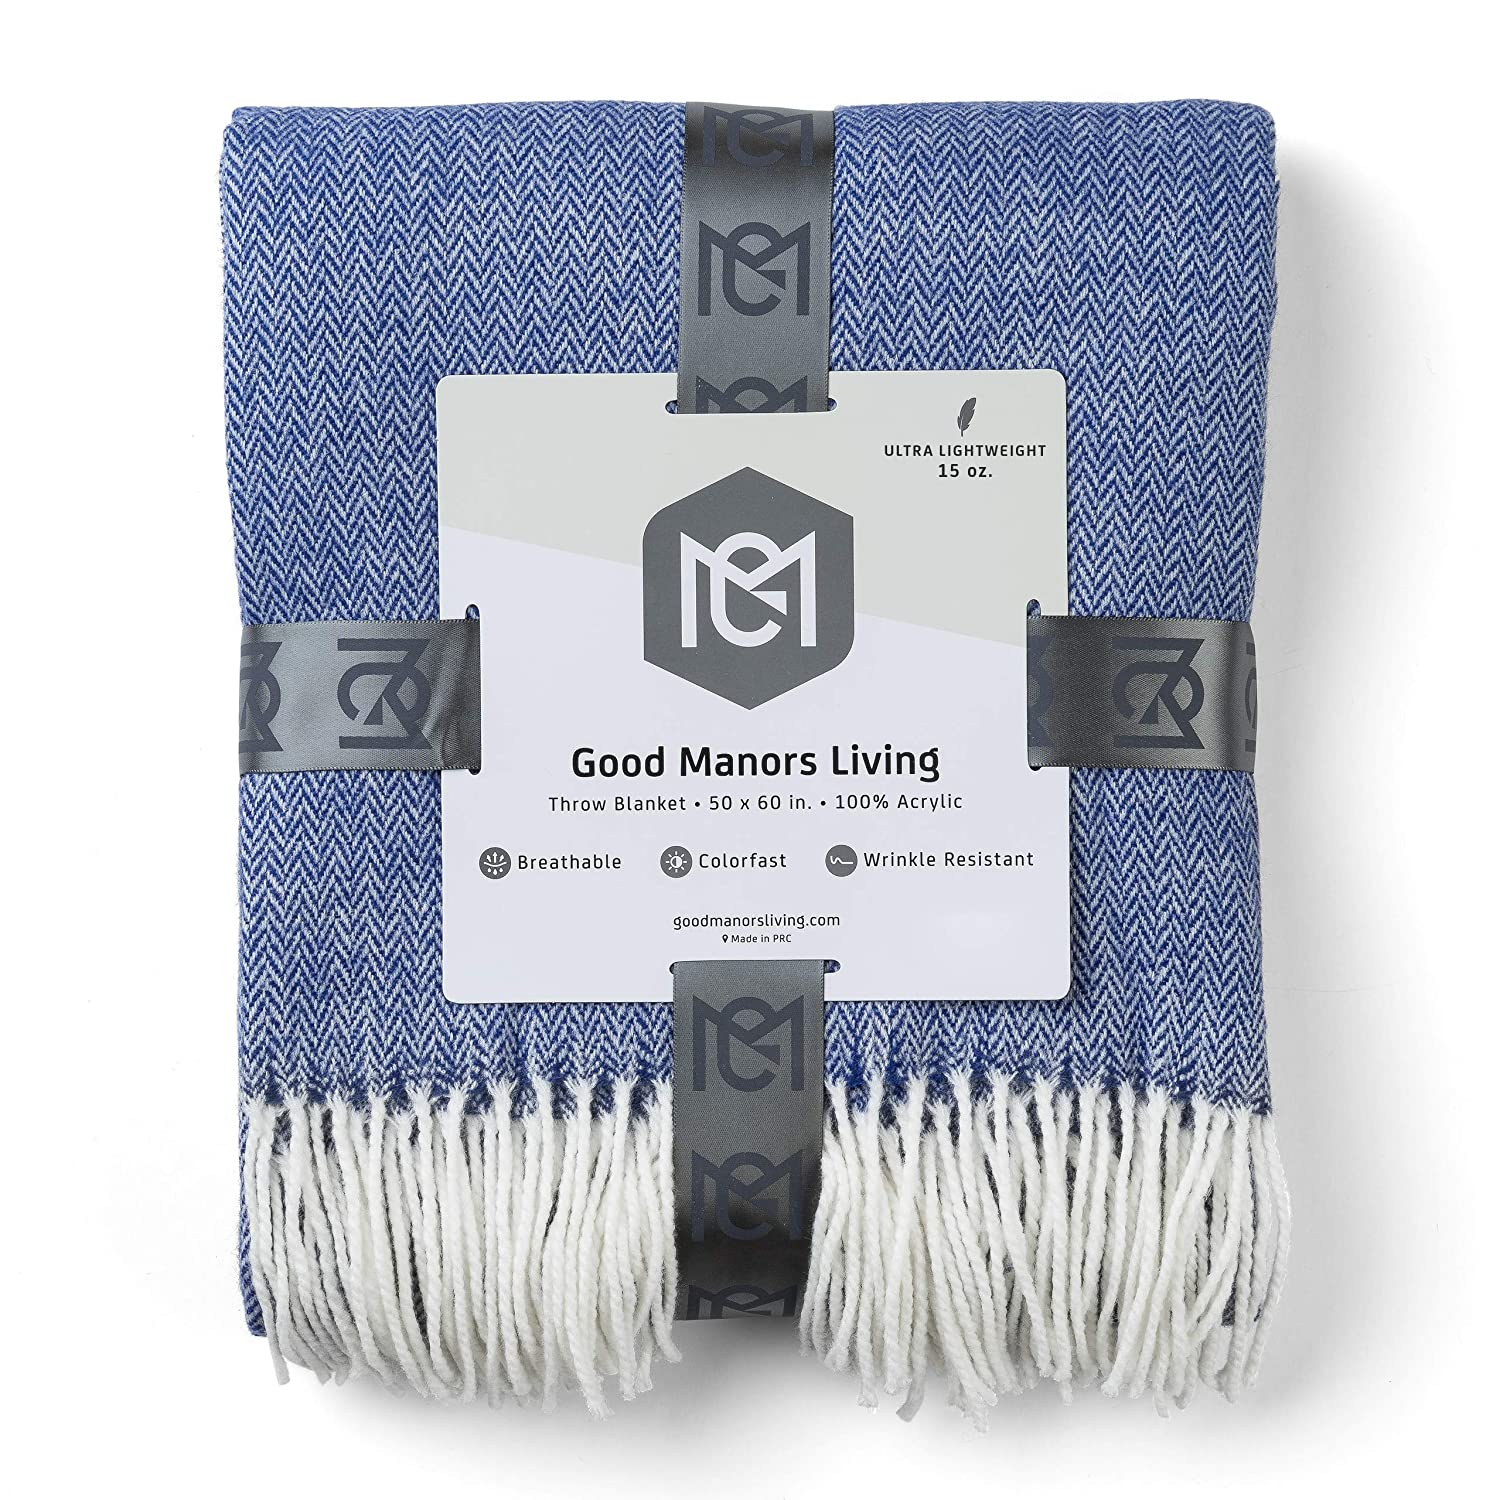 """GOOD MANORS Herringbone Throw Blanket, Modern Farmhouse Decor for Couch, Chair, Ladder, Indoor-Outdoor Everyday Use, Soft Faux Cashmere, Ultra Lightweight, 50"""" x 60"""", Navy Blue and White"""